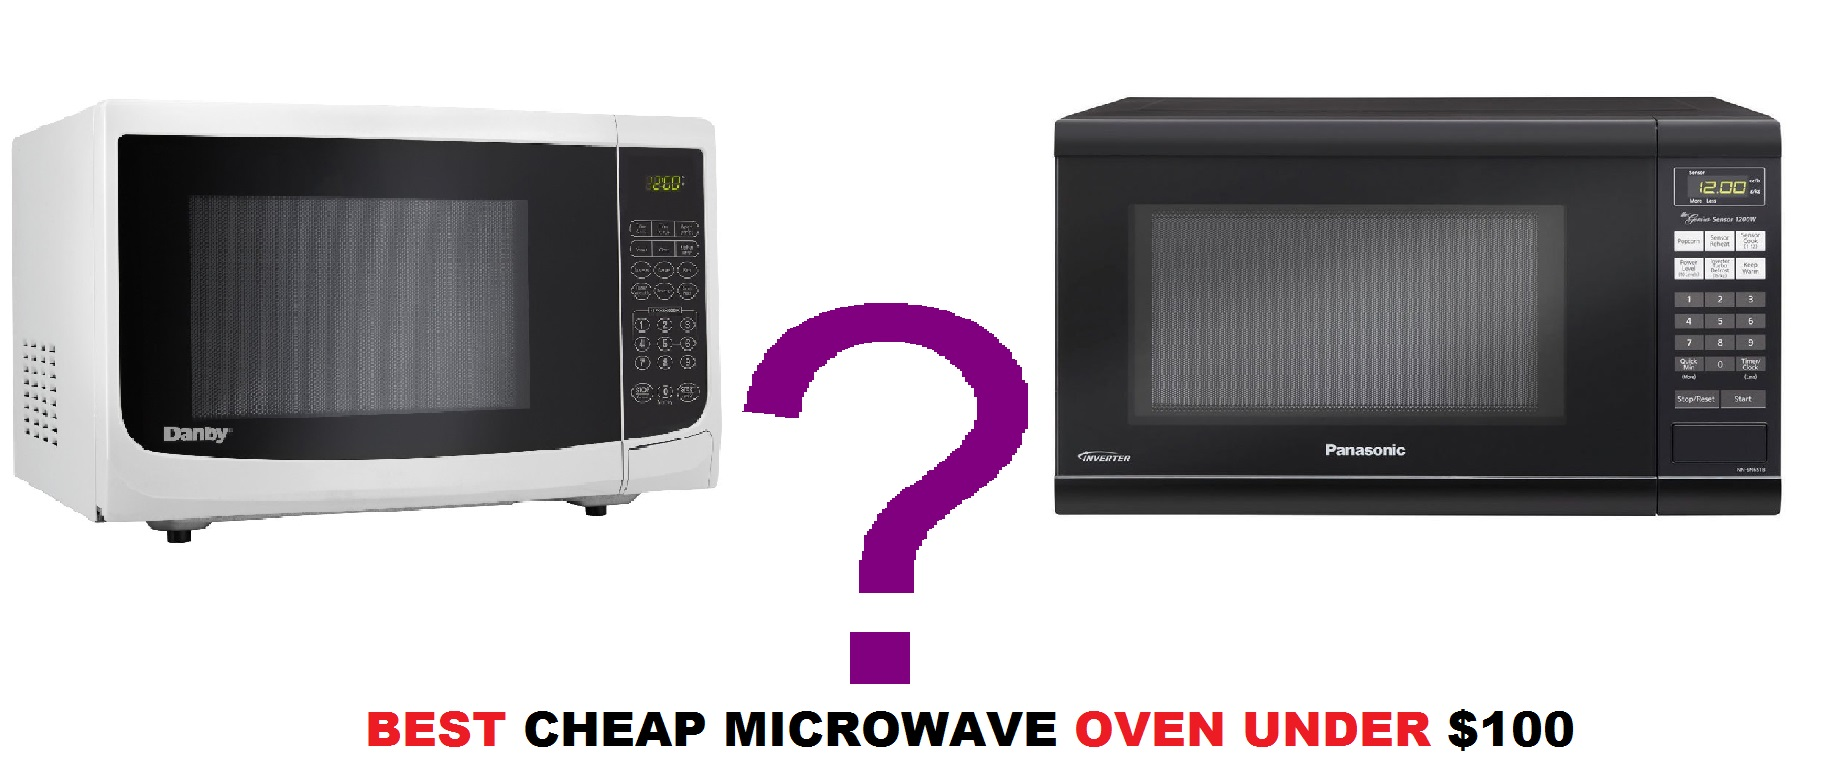 Best 6 Cheap Microwave Ovens For Shoppers On A Budget